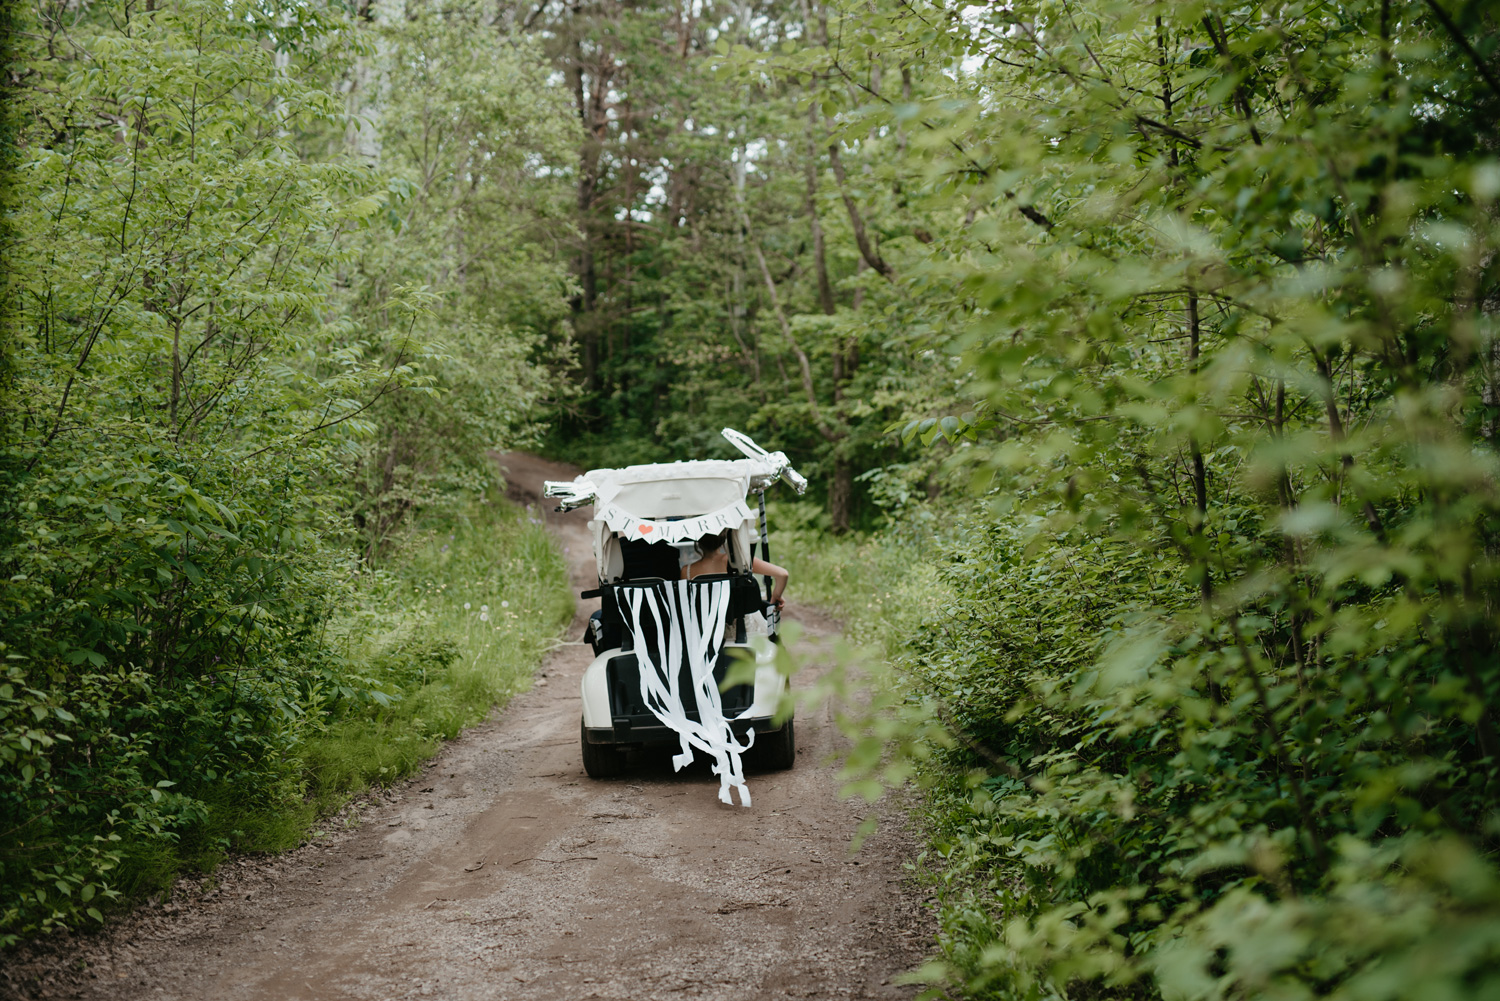 Bride and groom in getaway golf cart driving through woods